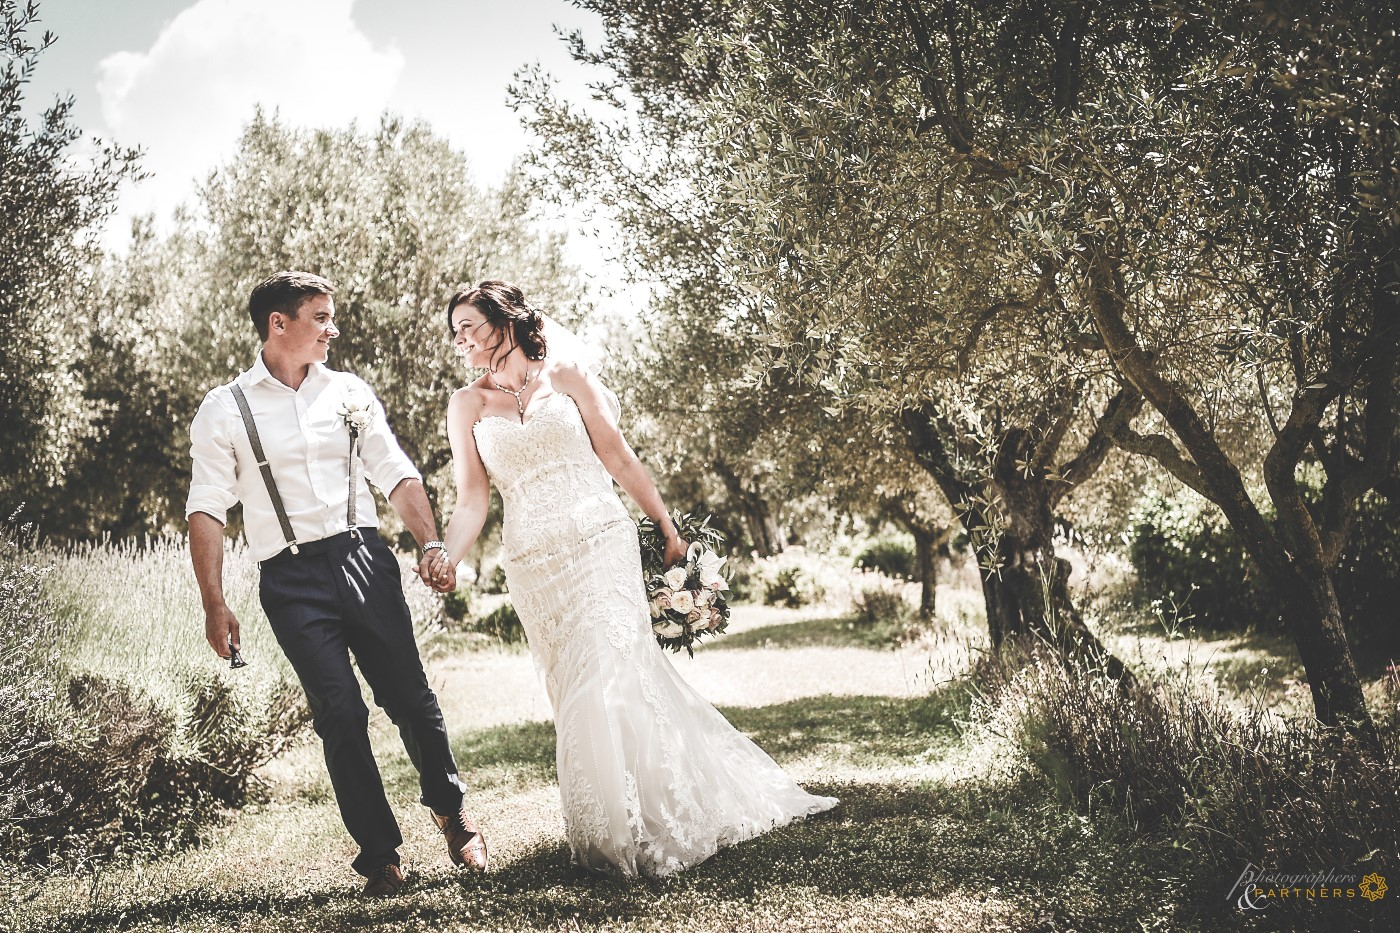 A walk among the olive trees...